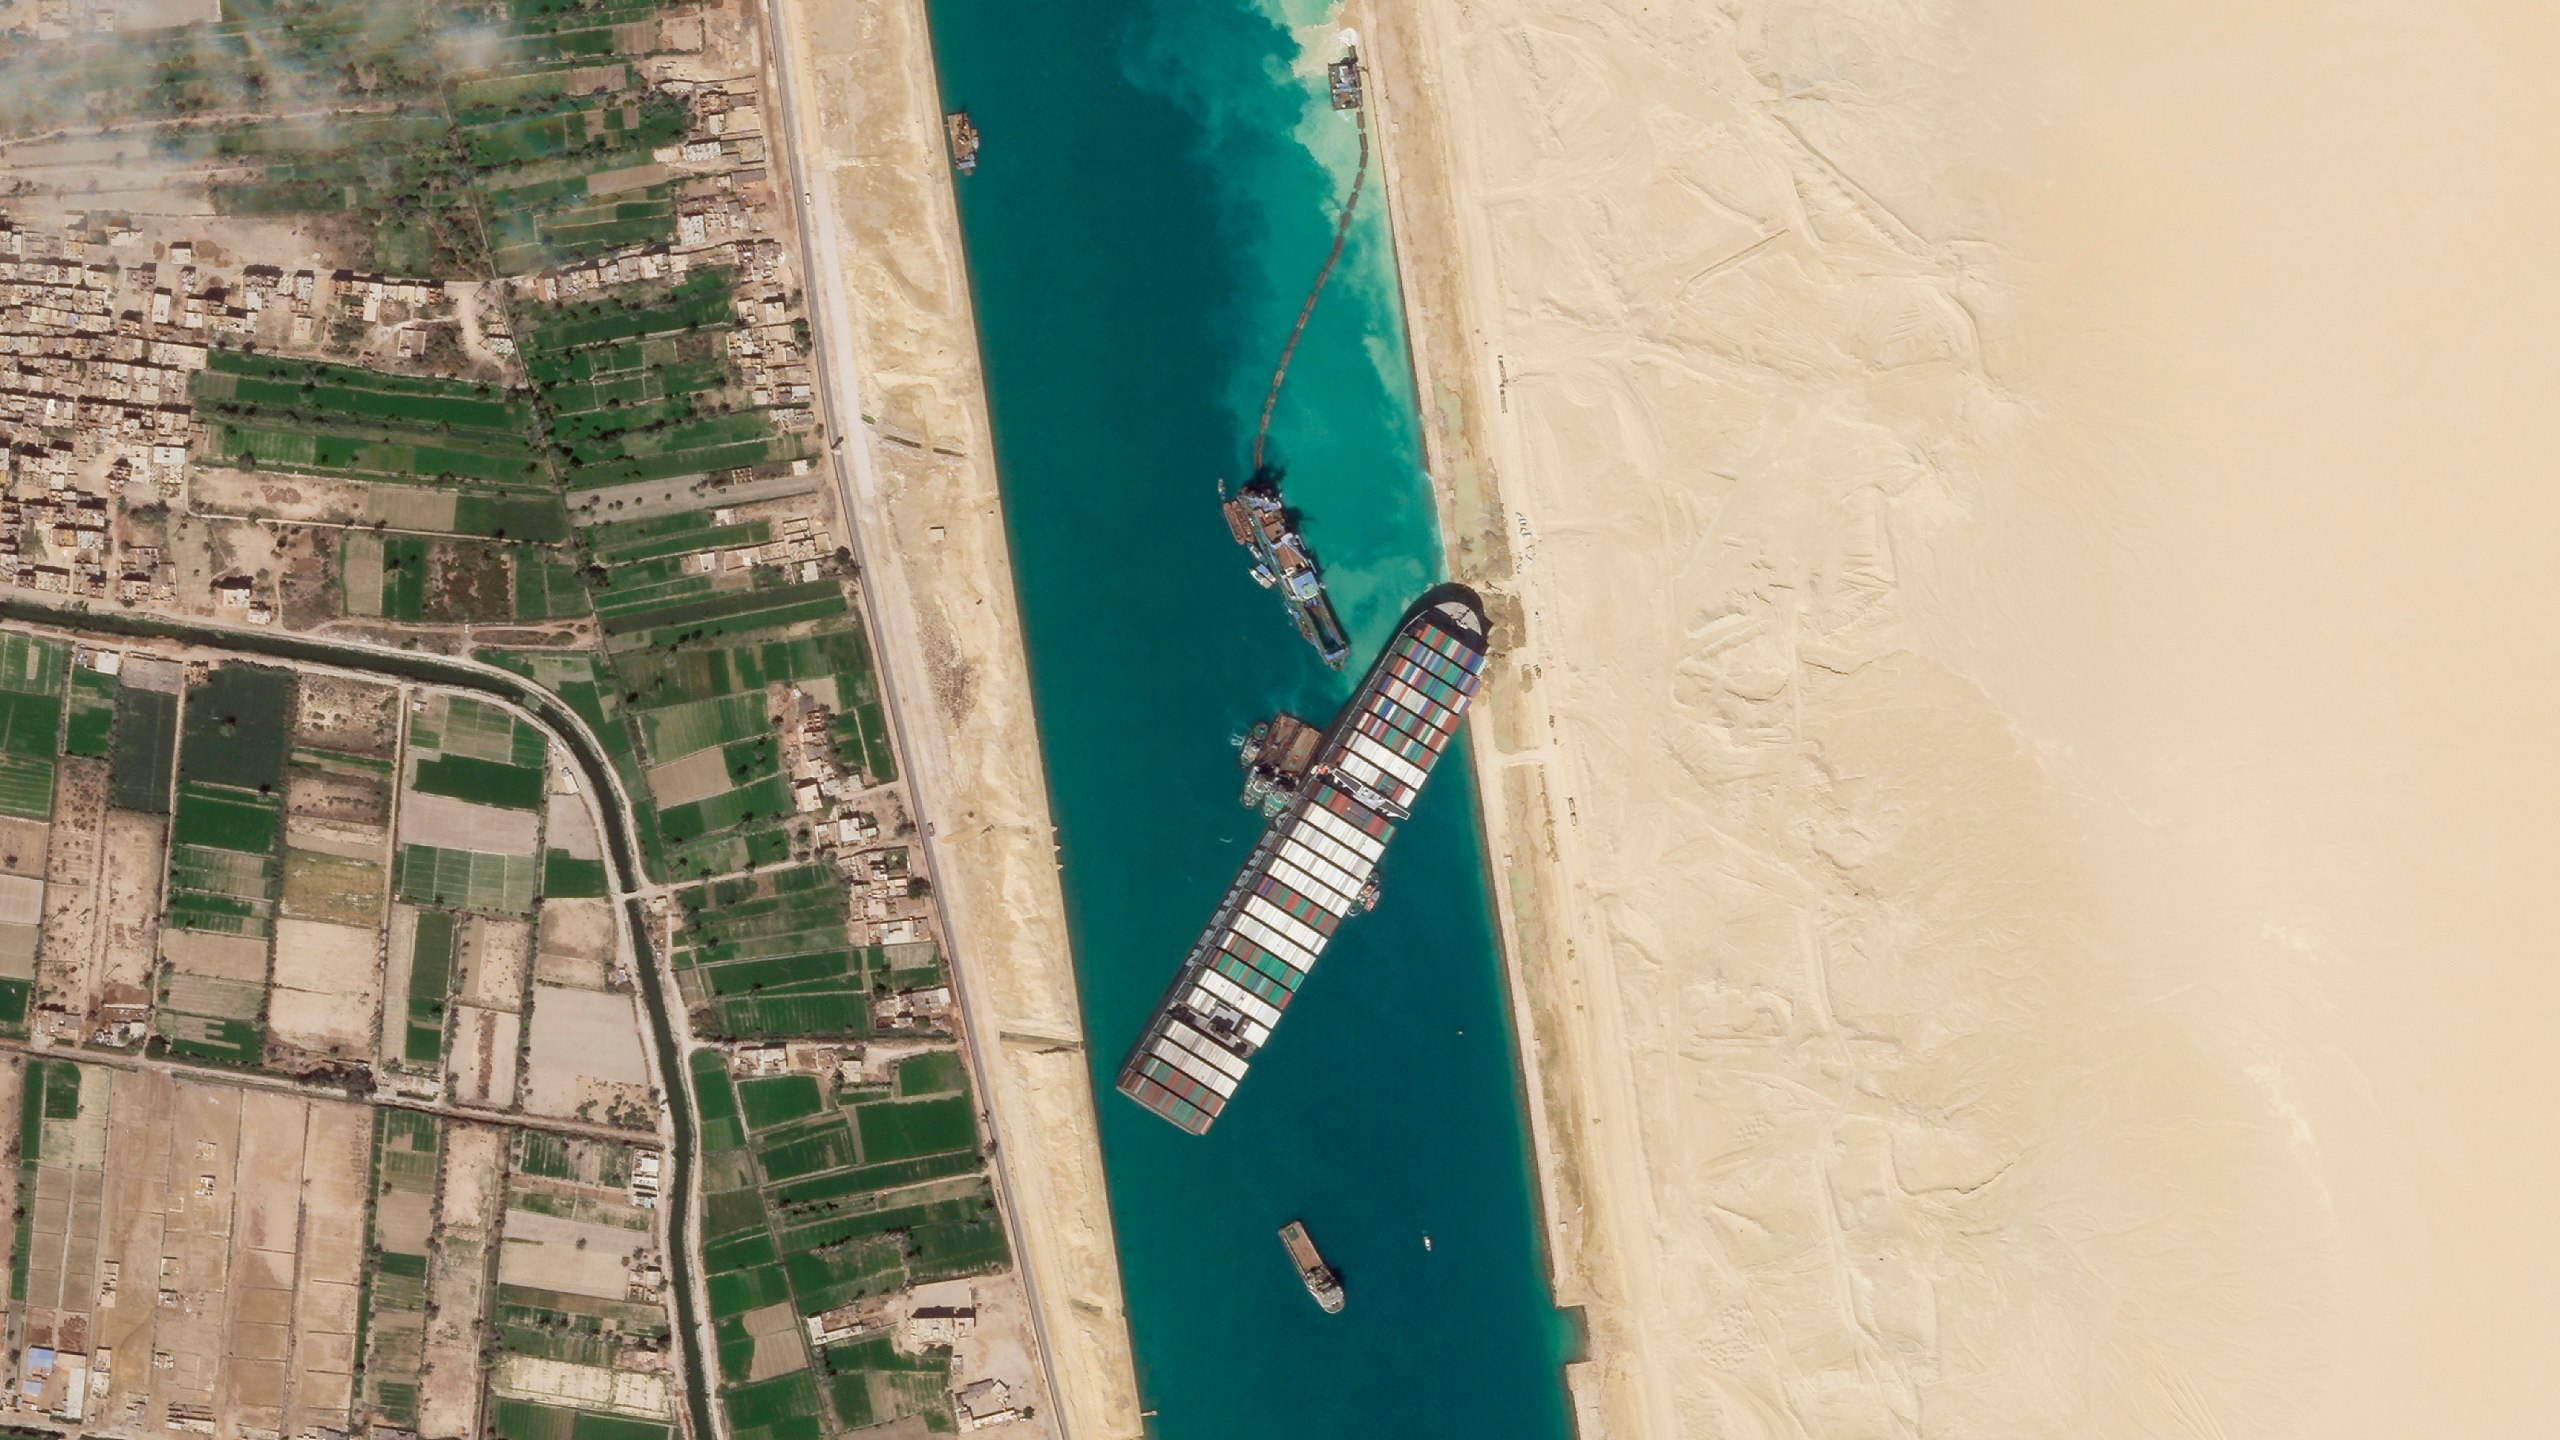 In this March 28, 2021, satellite file image from Planet Labs Inc, the cargo ship MV Ever Given sits stuck in the Suez Canal near Suez, Egypt. (Planet Labs Inc. via AP)